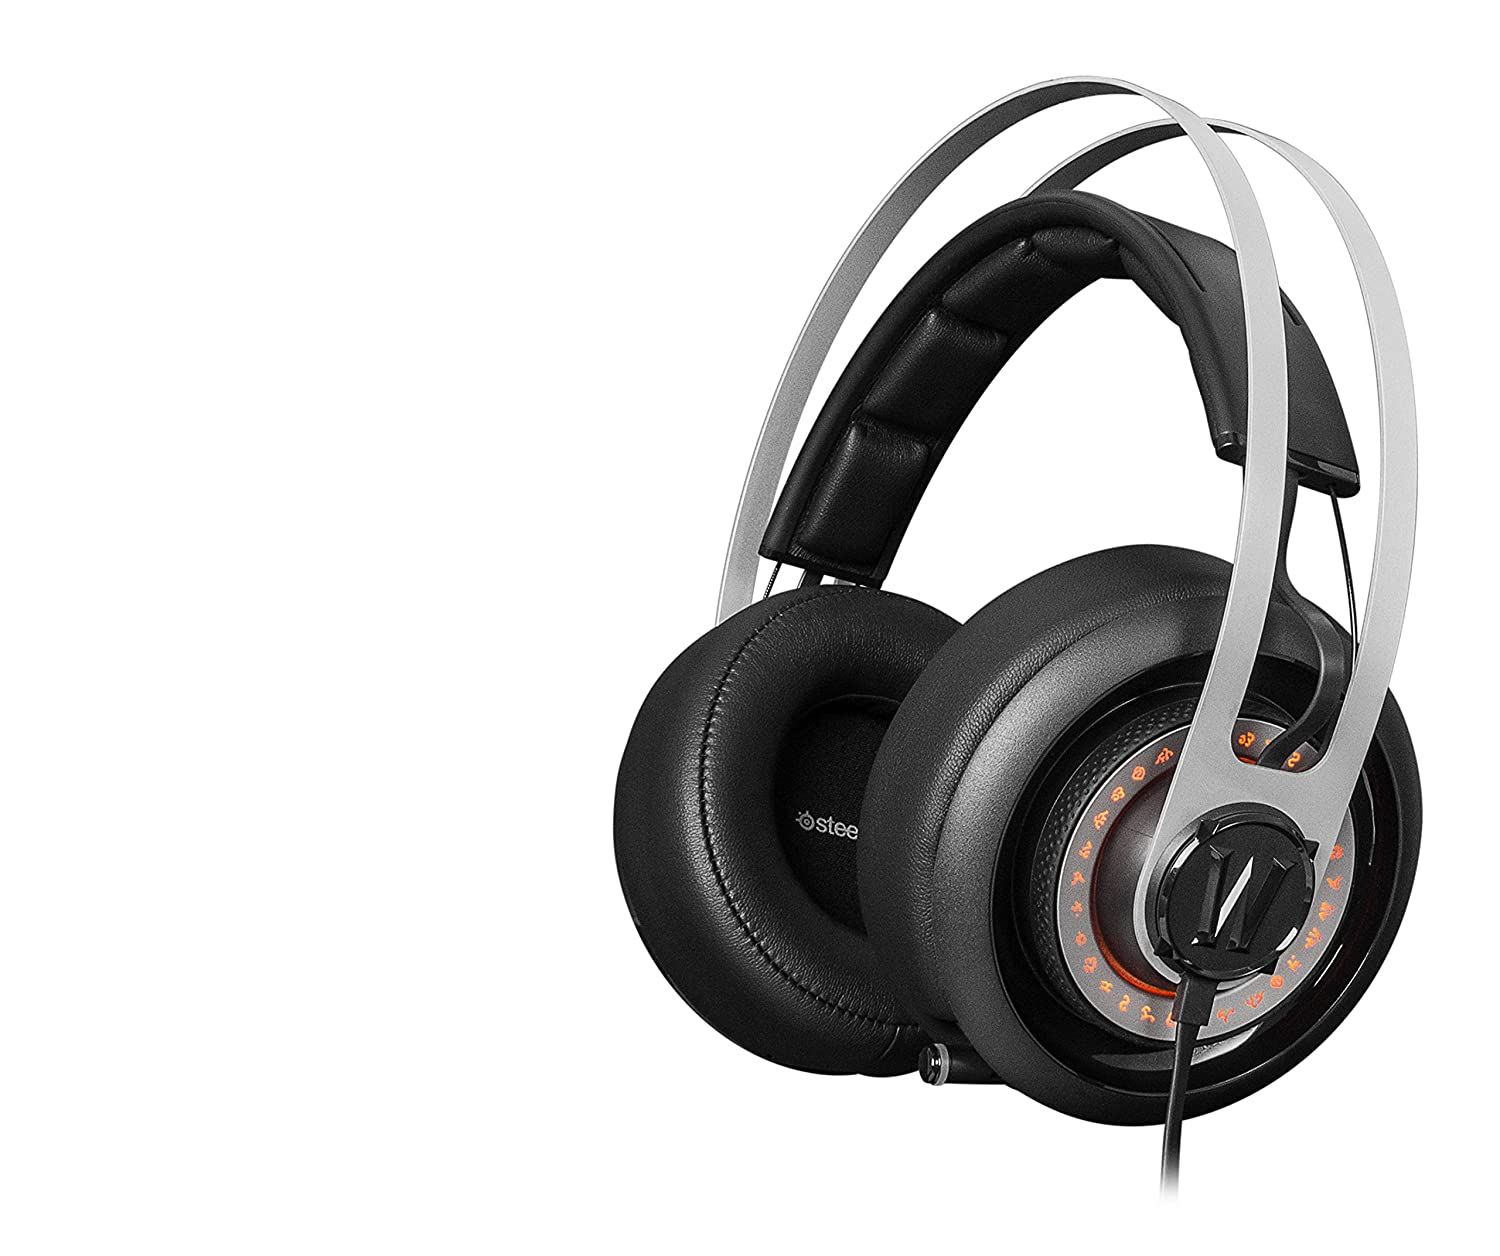 Steelseries Siberia Elite World Of Warcraft 840 Wireless Bluetooth The Headsets Ear Cups Feature Passive Noise Isolated Cushions And Are Highlighted By Illuminated Rune Circles Customize With 168 Million Colors